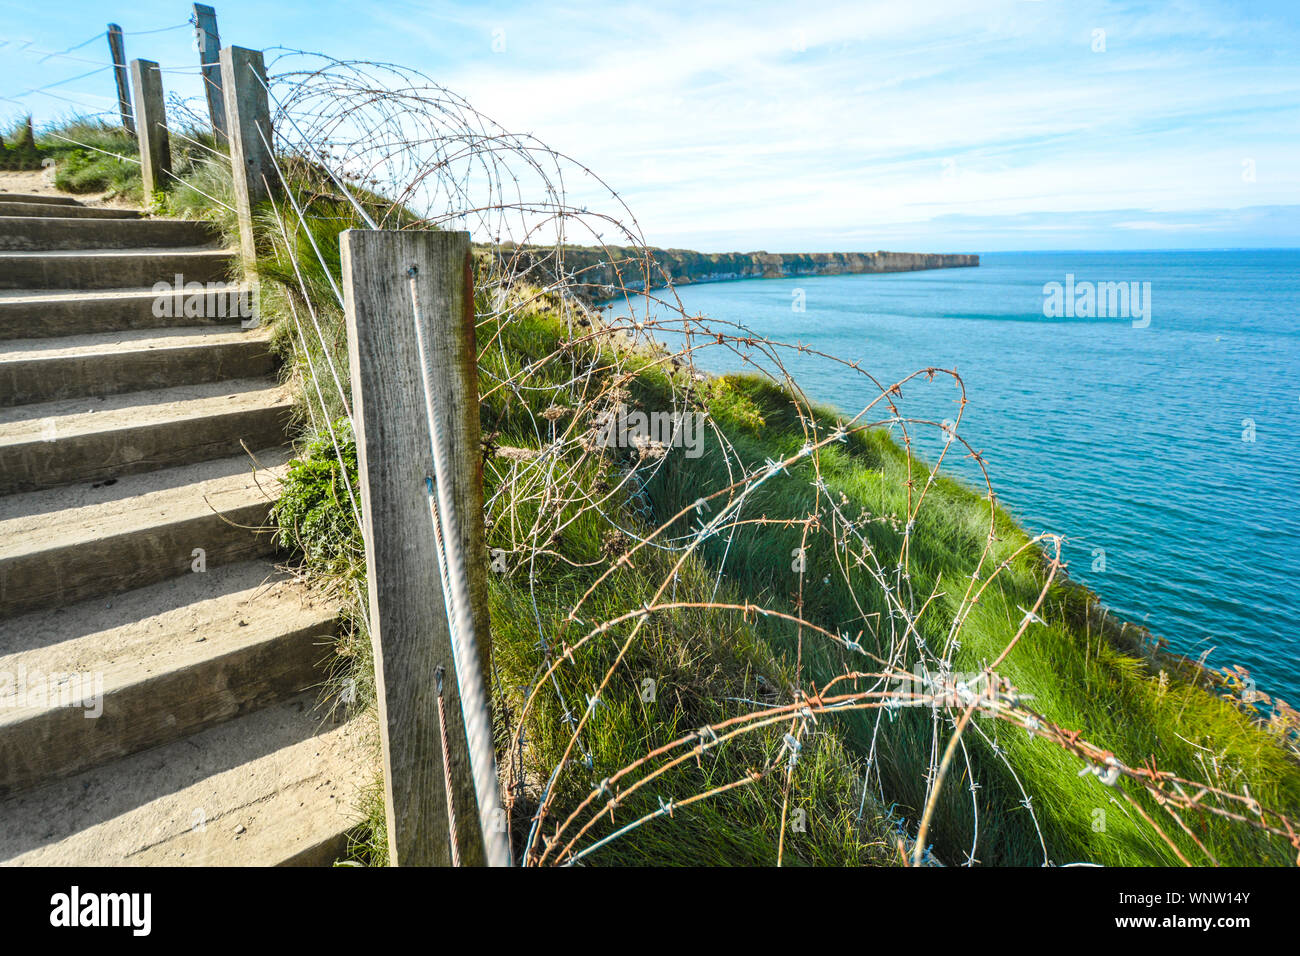 The coast of Normandy France, Pointe du hoc where the allied forces faced the Germans during World War 2, with barbed wire, Stock Photo